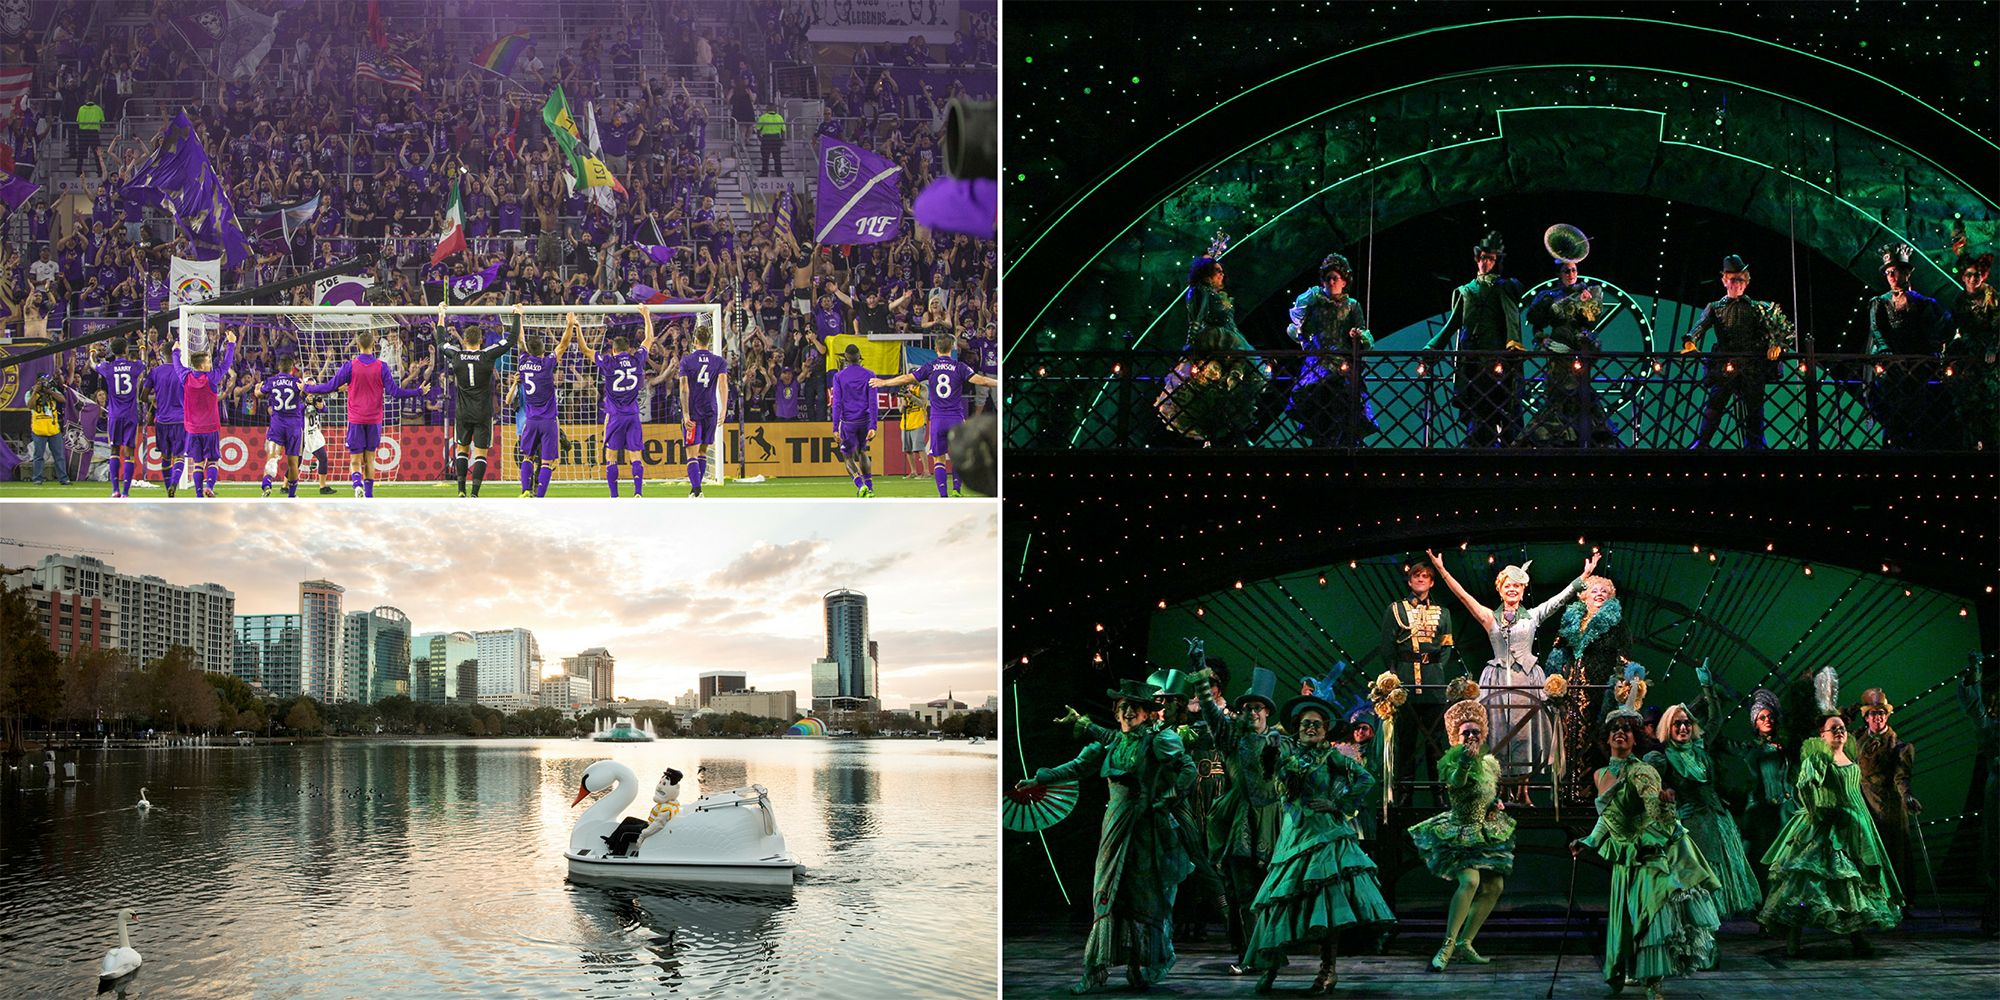 The Dr. Phillips Center for the Performing Arts, Lake Eola, and Orlando City Soccer stadium